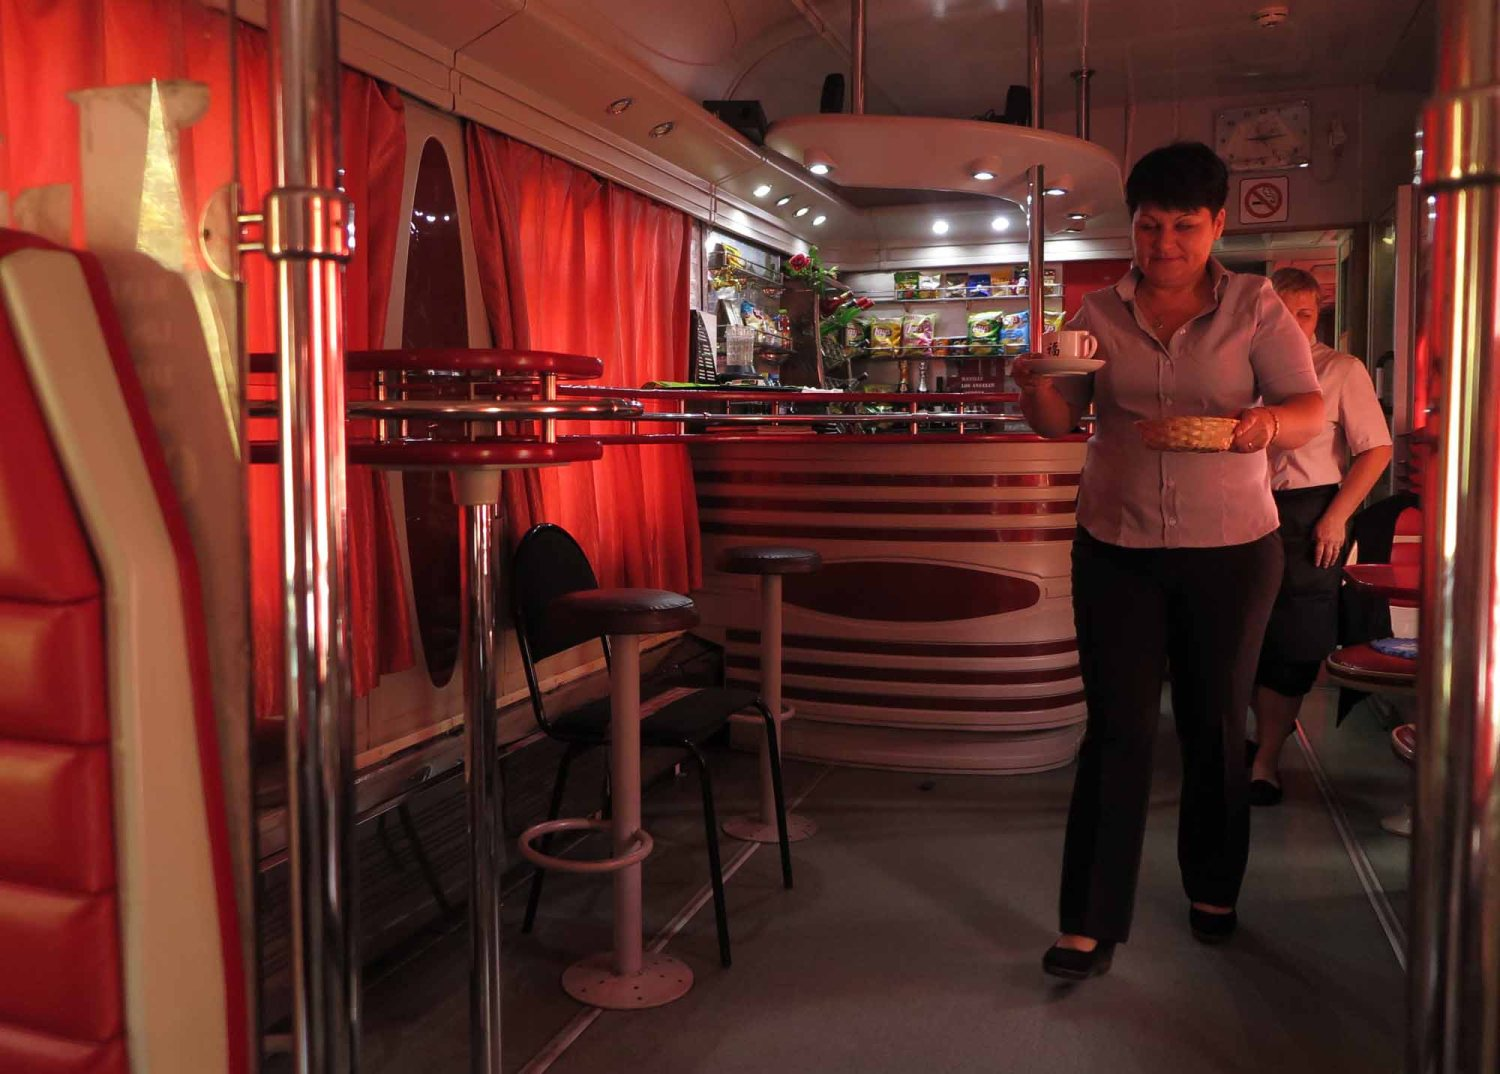 Russia-Trans-Siberian-Railway-Food-And-Drink-Dining-Car